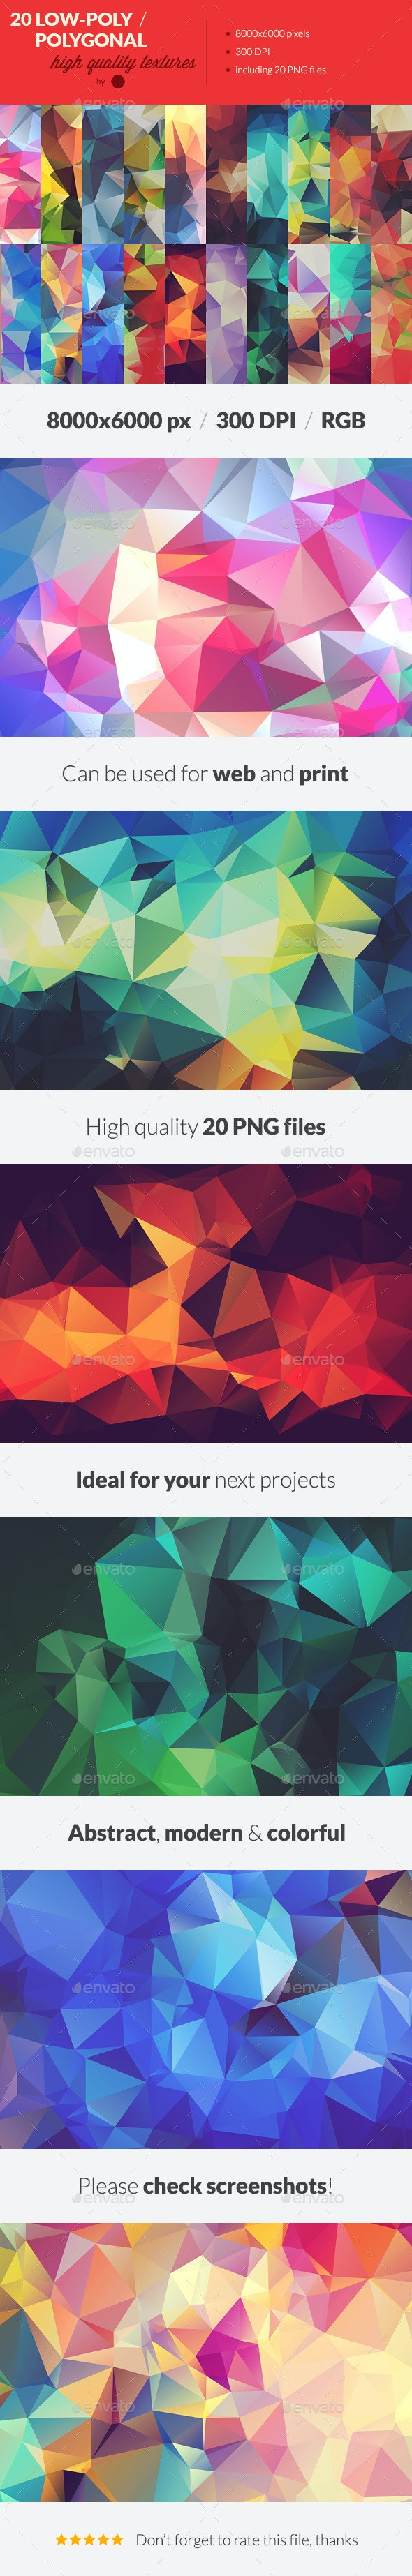 20 Low-Poly Polygonal Background Textures - Abstract Backgrounds